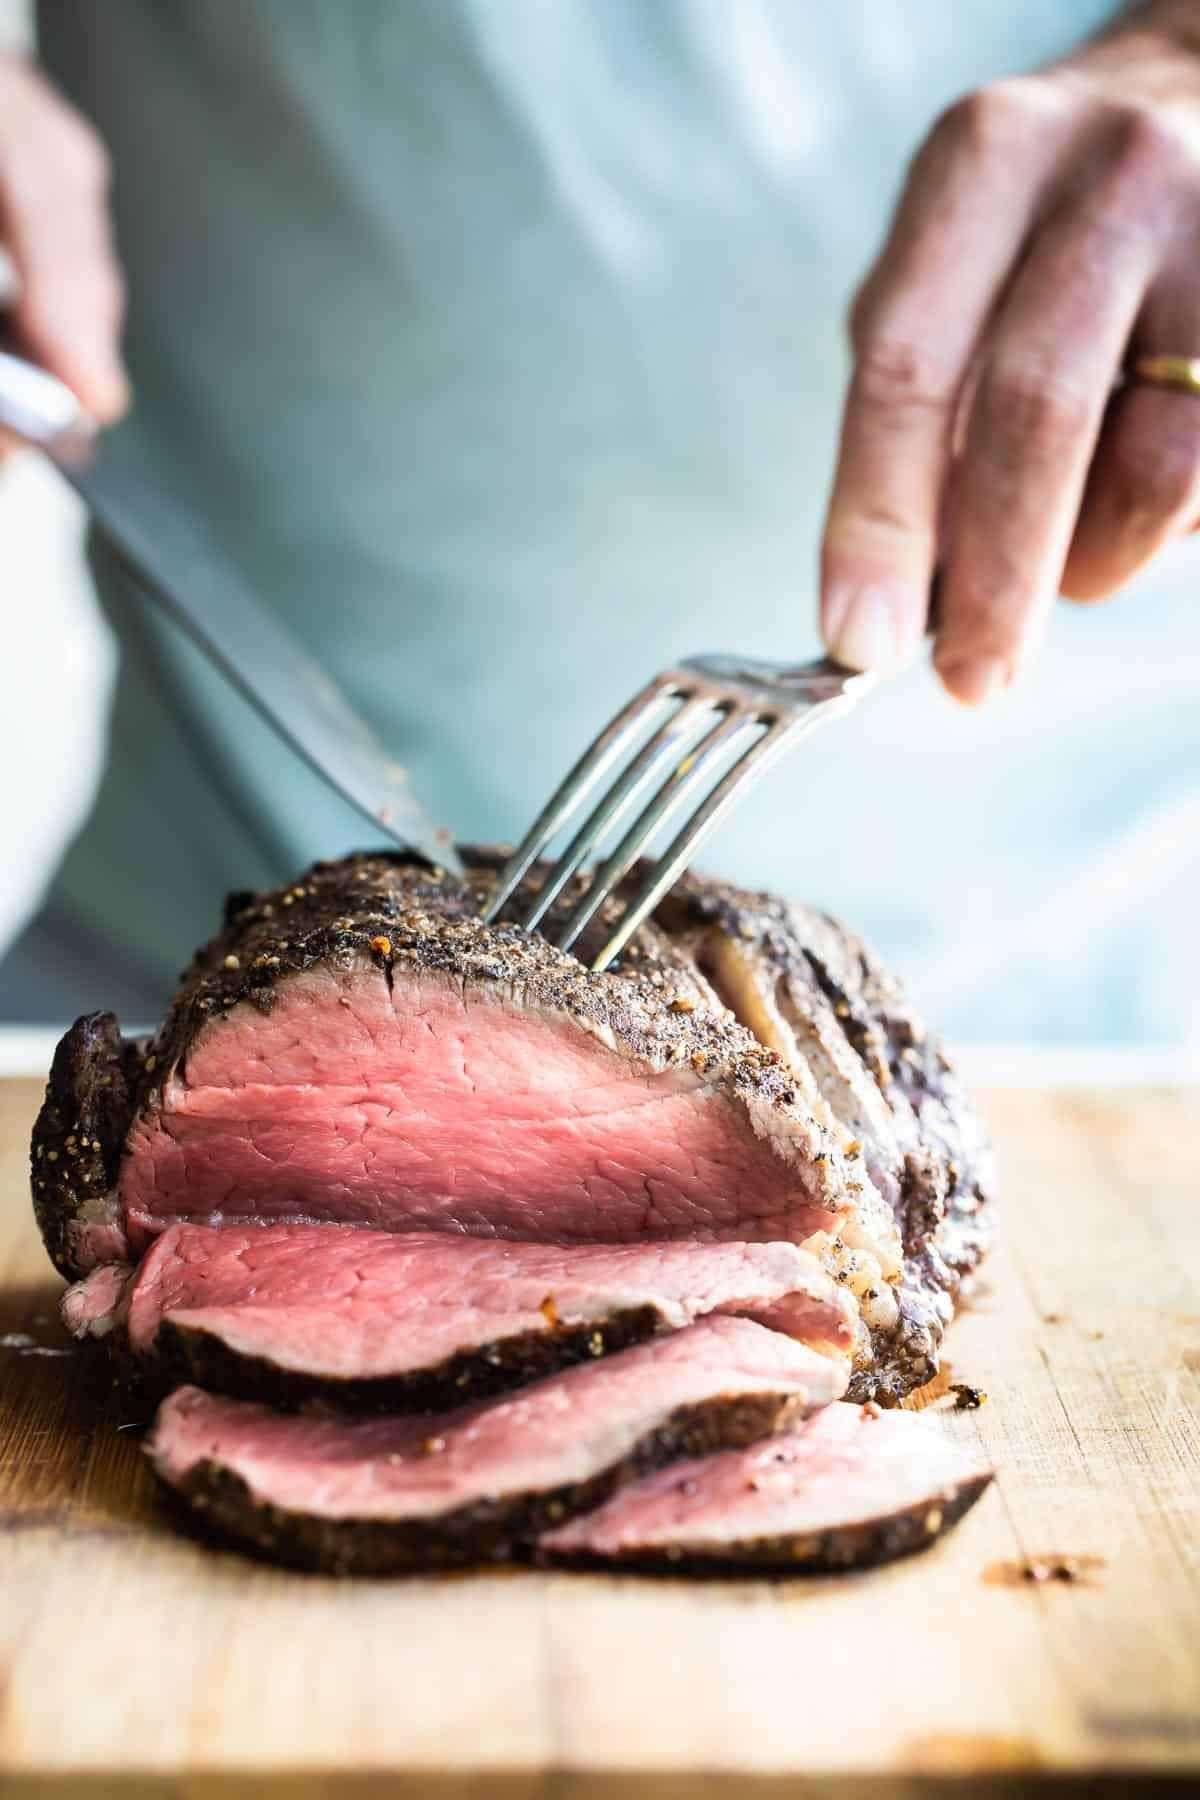 roast beef tenderloin being sliced